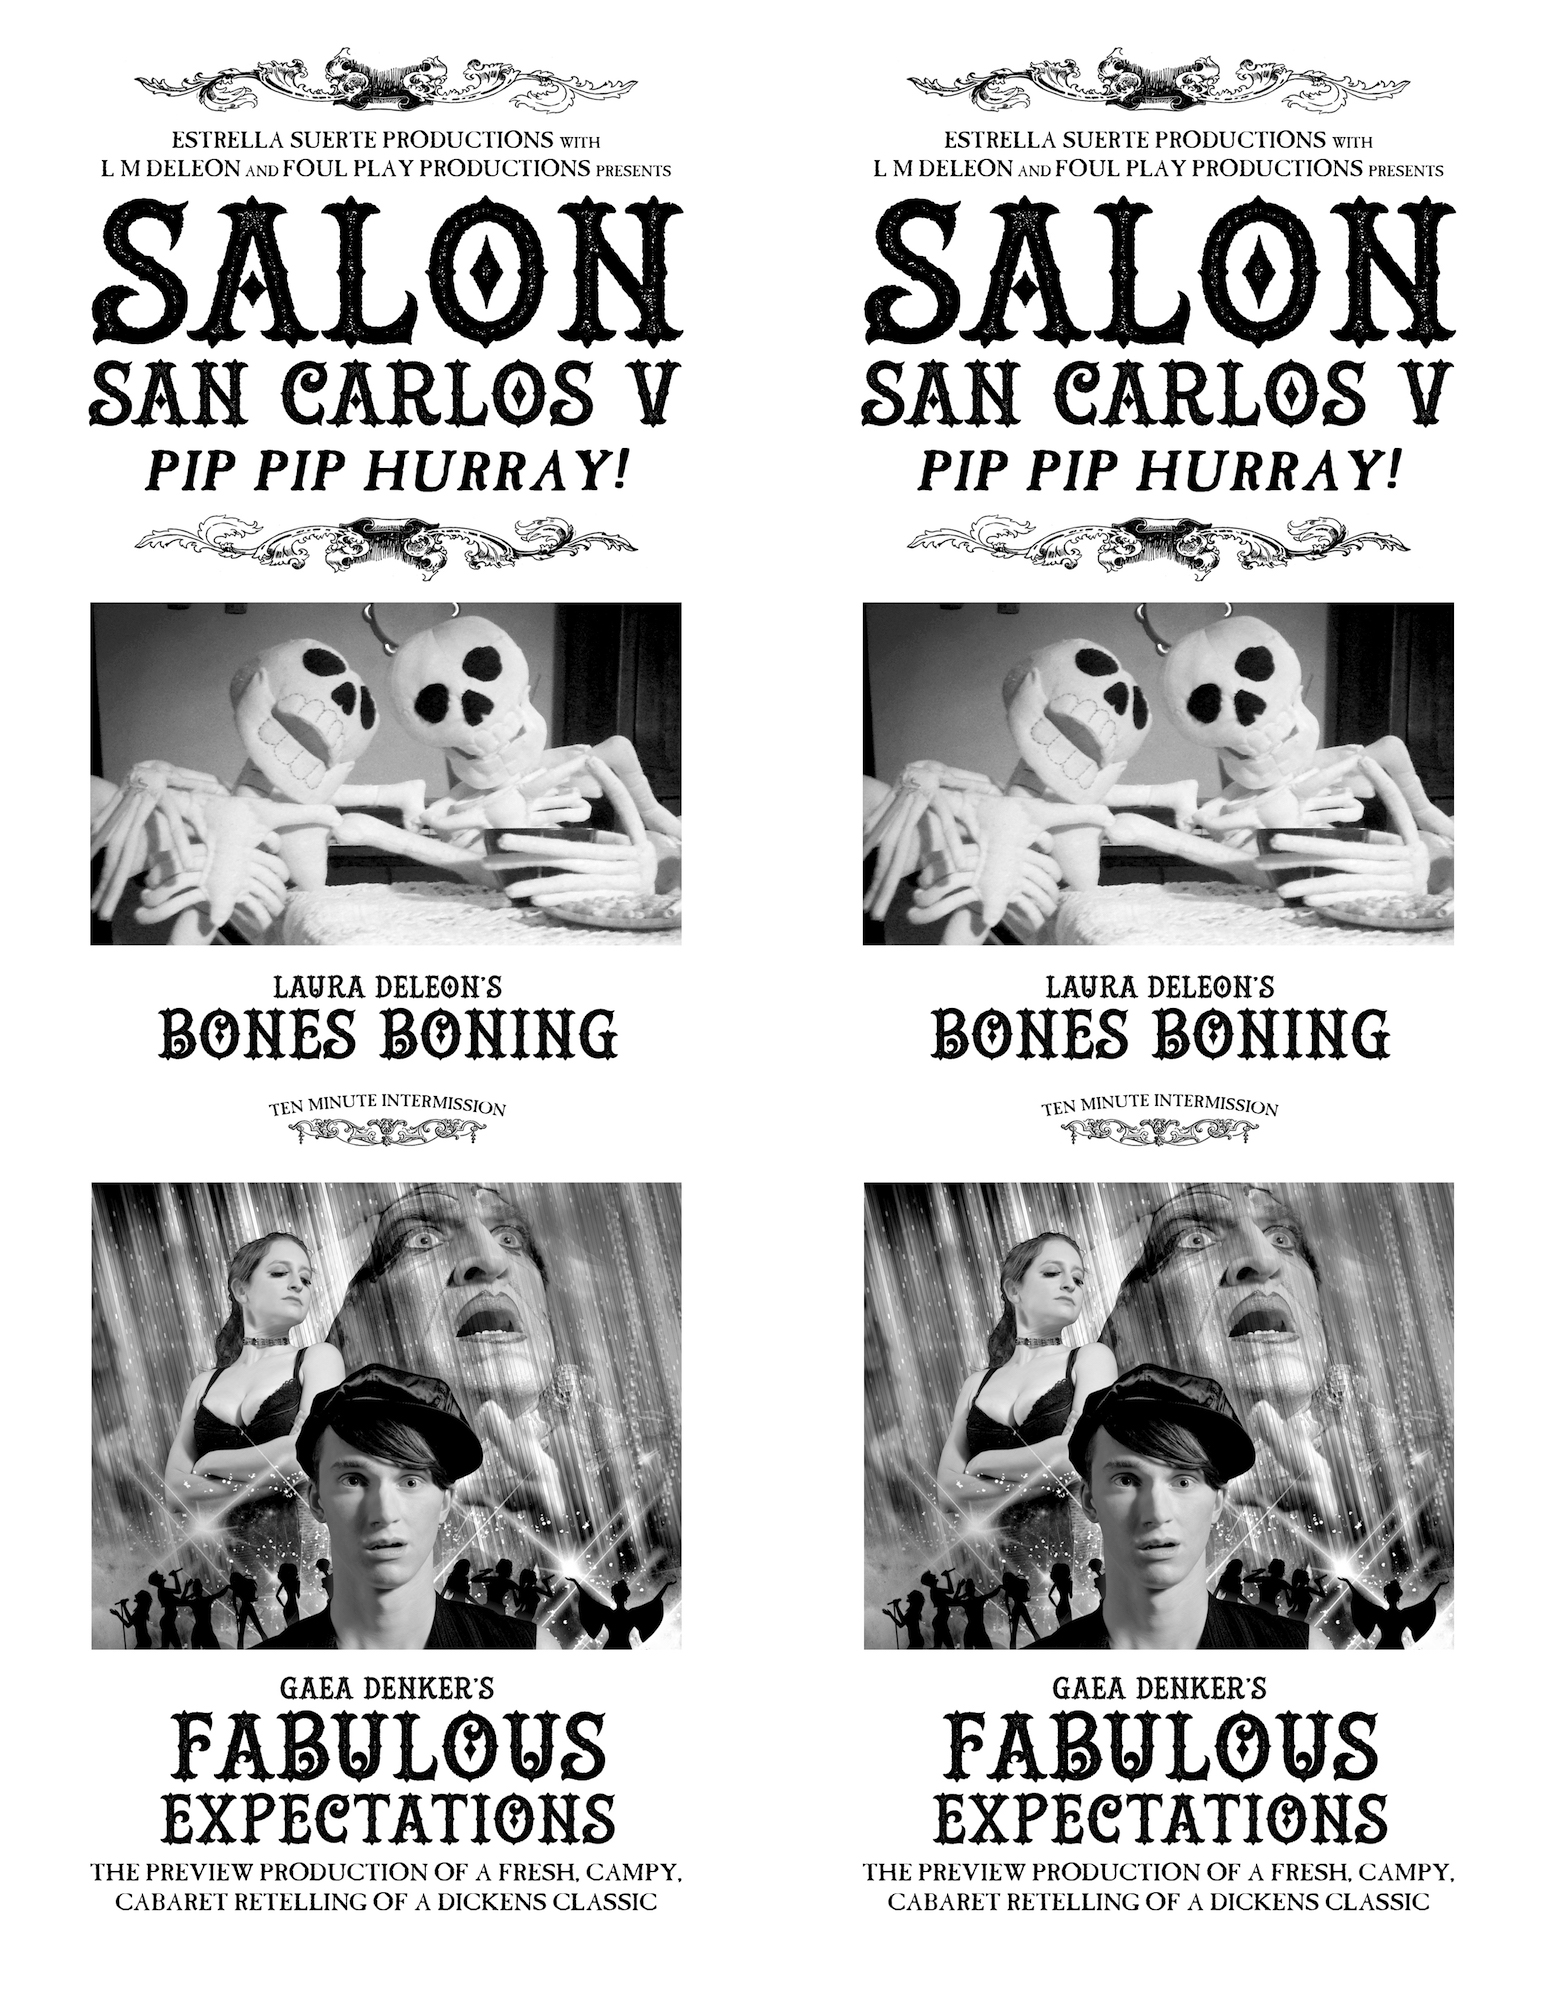 Flyer with photo of two skeleton puppets captioned Bones Boning, and a graphic with a face of a drag queen, a topless cis woman, and an androgynous performer in a news cap.